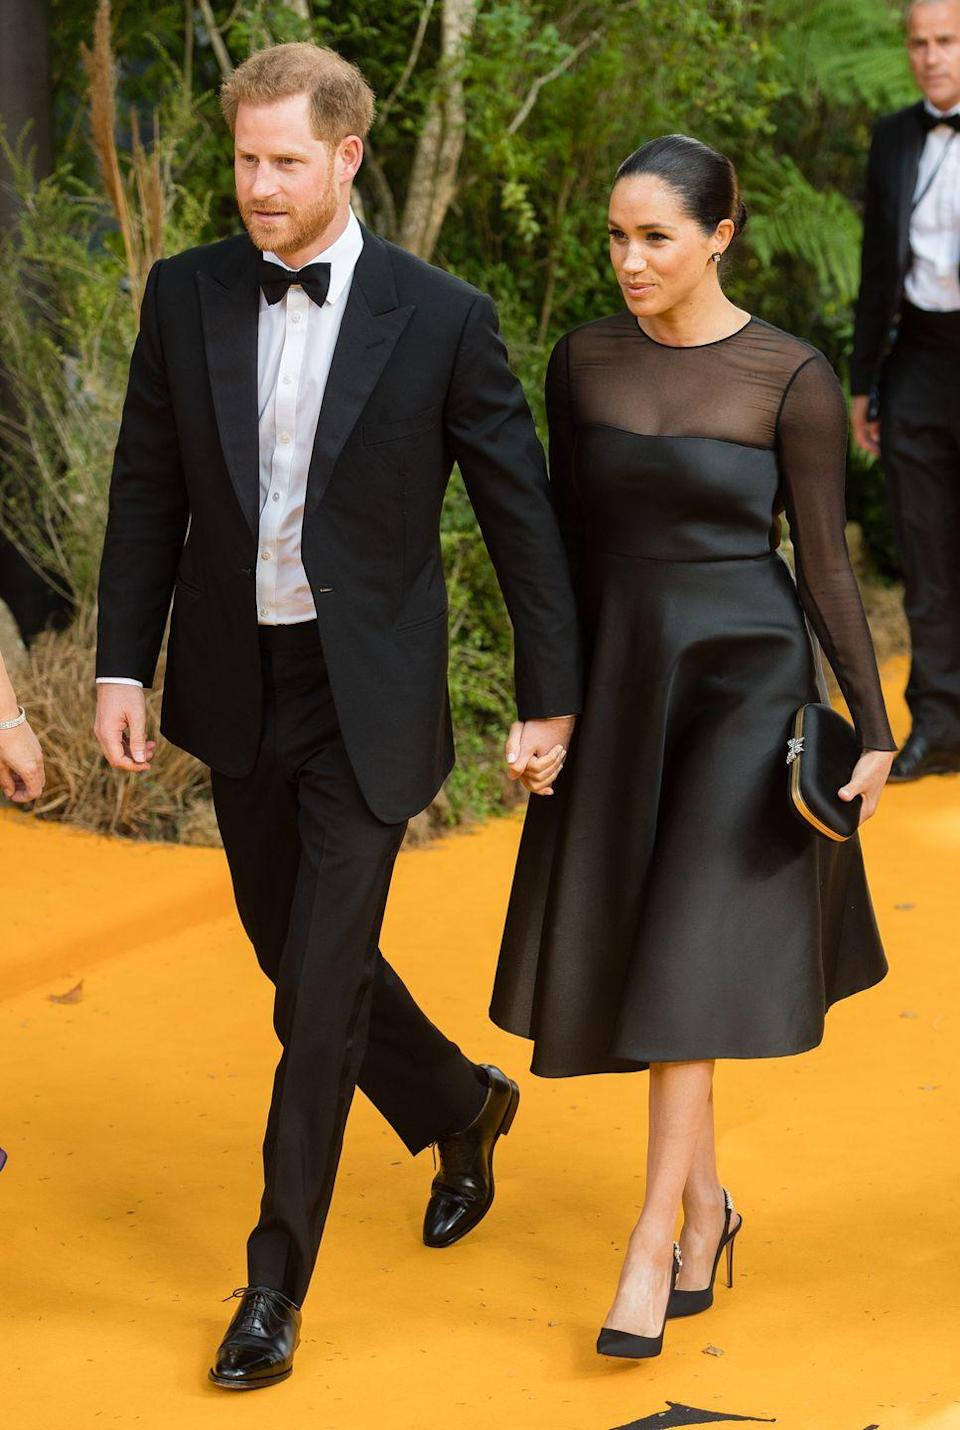 """<p><a href=""""https://www.harpersbazaar.com/uk/celebrities/red-carpet/a28389300/duchess-of-sussex-attends-the-lion-king-london-premiere/"""" rel=""""nofollow noopener"""" target=""""_blank"""" data-ylk=""""slk:The royals walked the red carpet together"""" class=""""link rapid-noclick-resp"""">The royals walked the red carpet together</a> at the London premiere of The Lion King, where they met with Beyoncé & Jay-Z, as well as Elton John. Meghan, in her first red-carpet appearance after giving birth, wore a black Jason Wu dress with timeless Aquazzura slingback pumps, while Harry was dapper in a tux and bow-tie. </p>"""